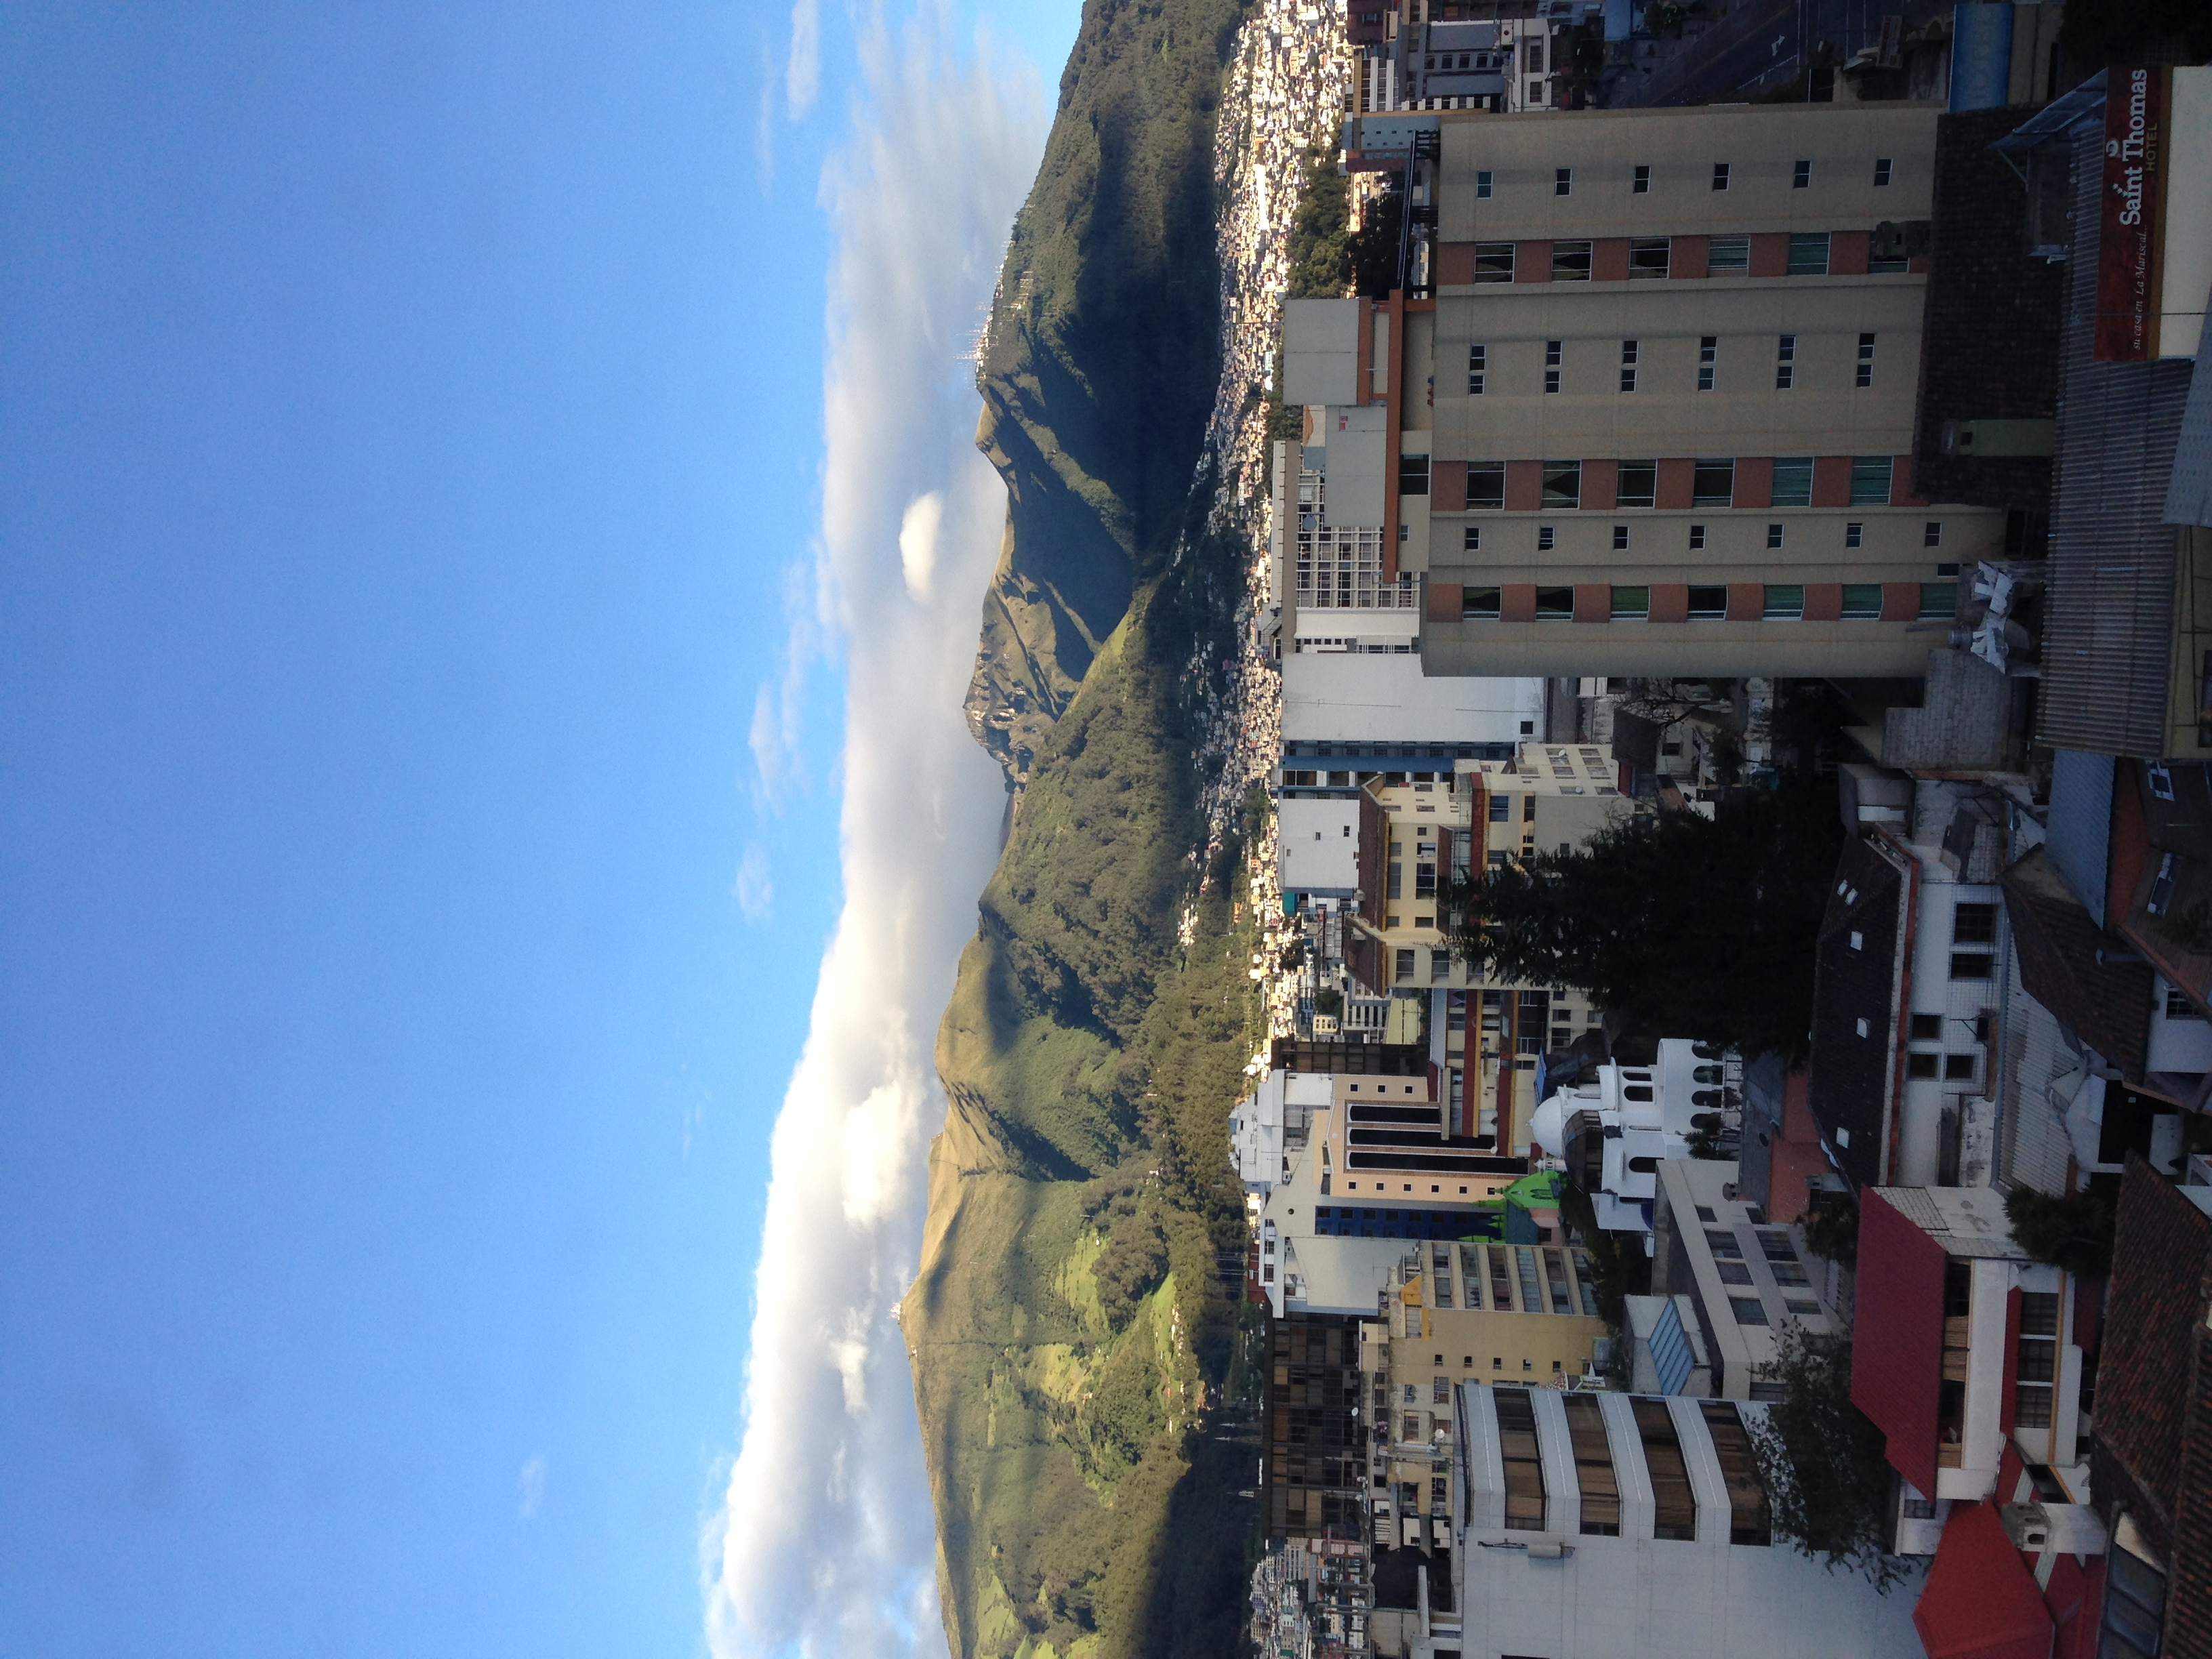 Woke up to a beautiful day in Quito and set out on the road to Otavalo.